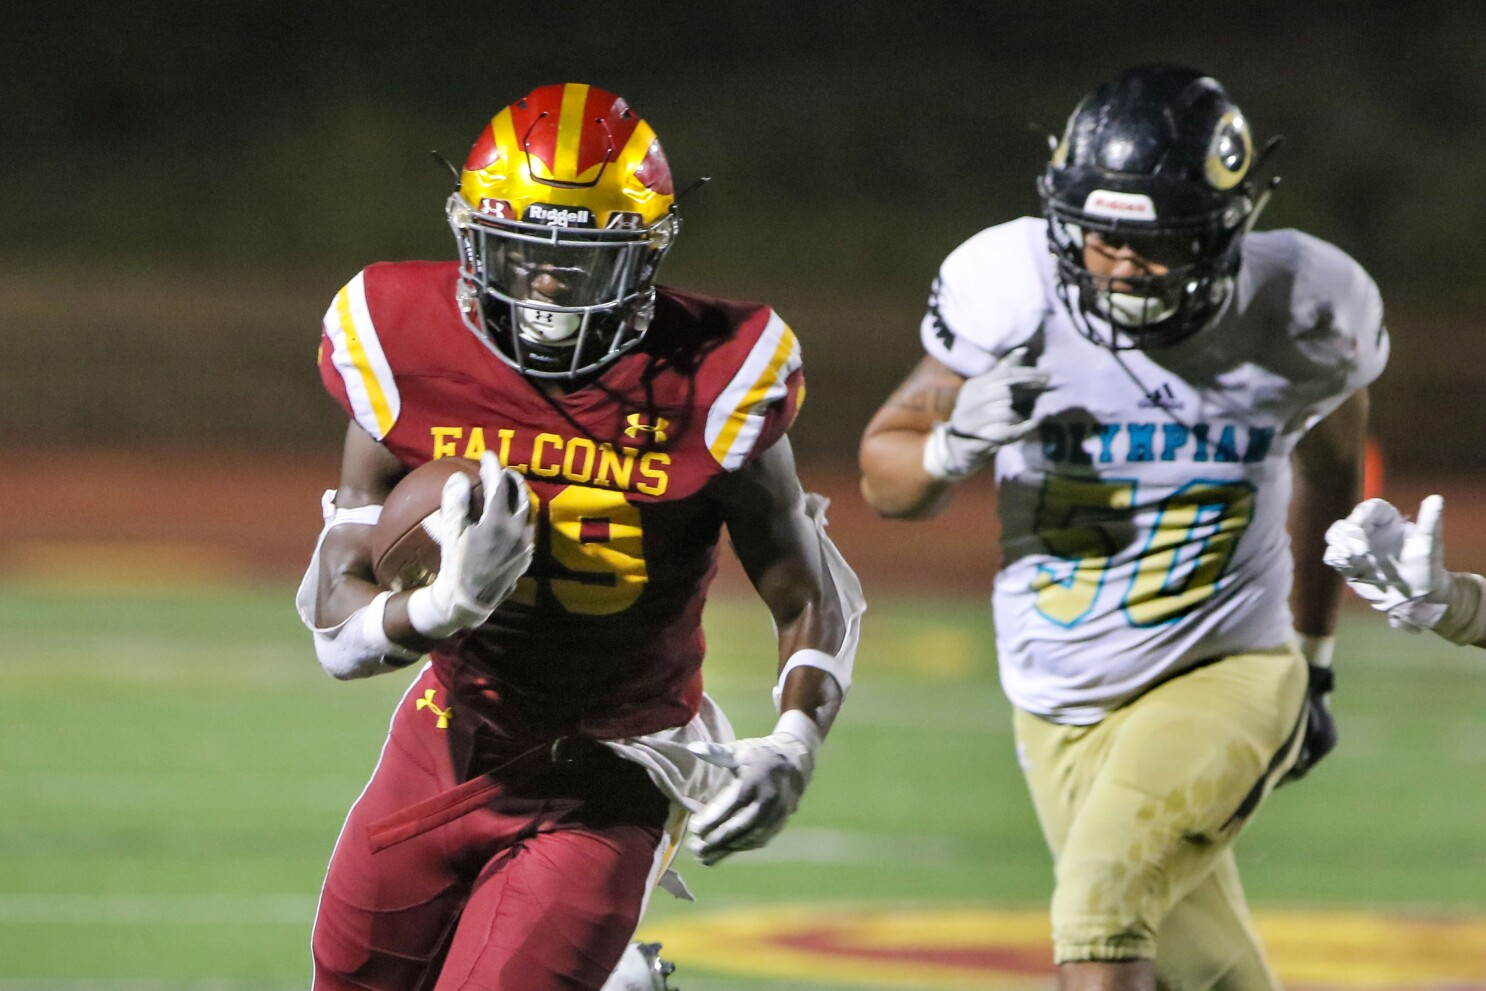 Torrey Pines finds a way to beat Olympian